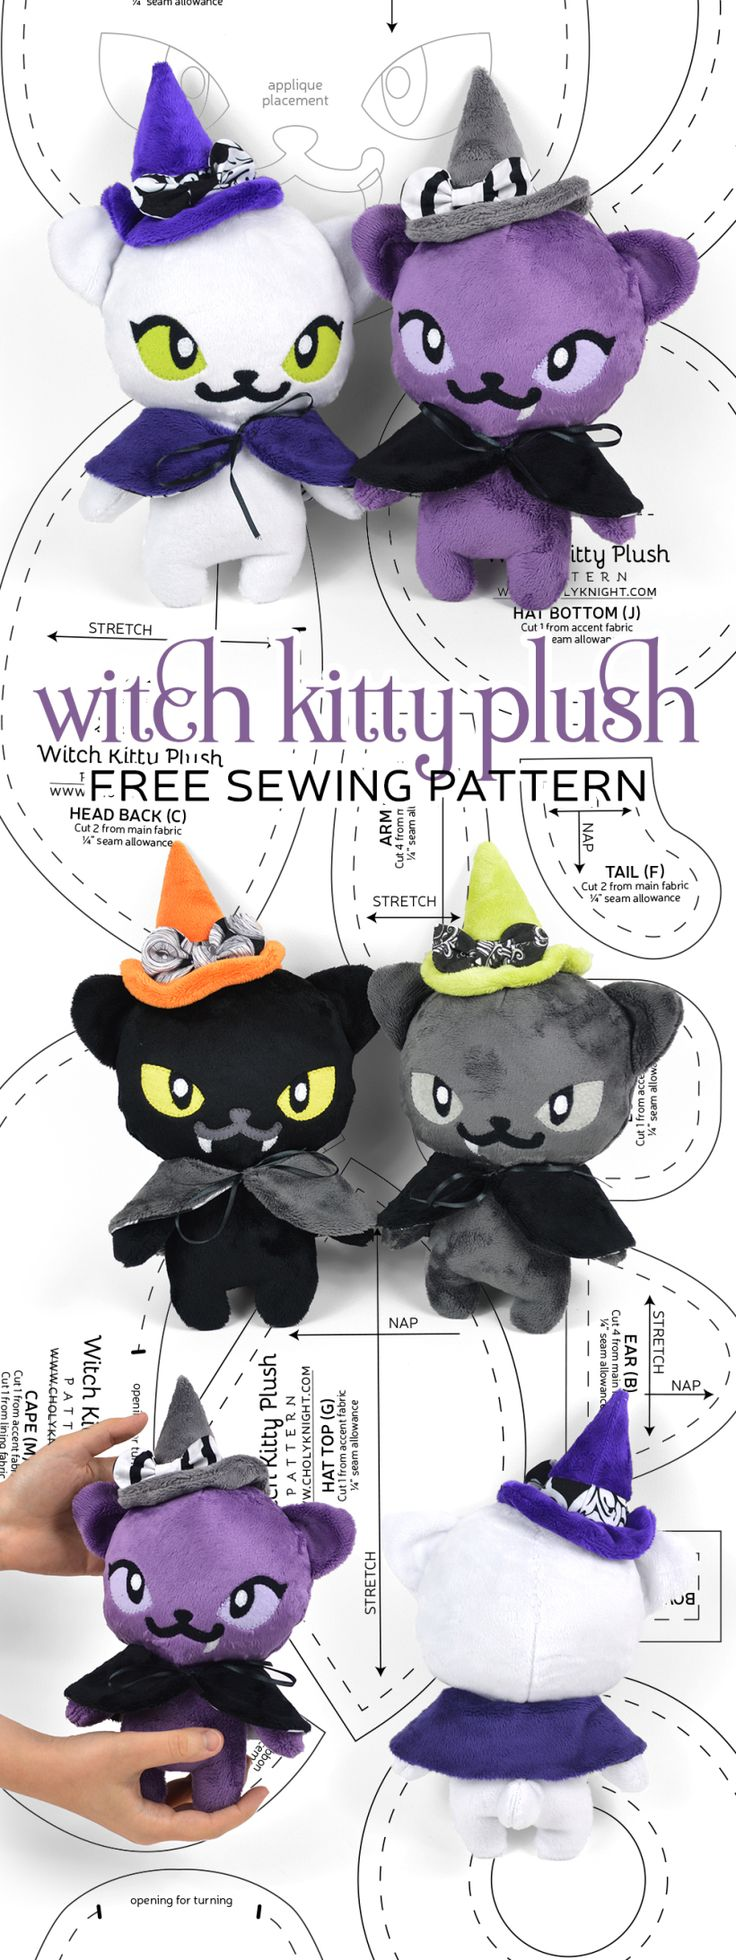 Free Pattern Friday! Witch Kitty Plush | Choly Knight